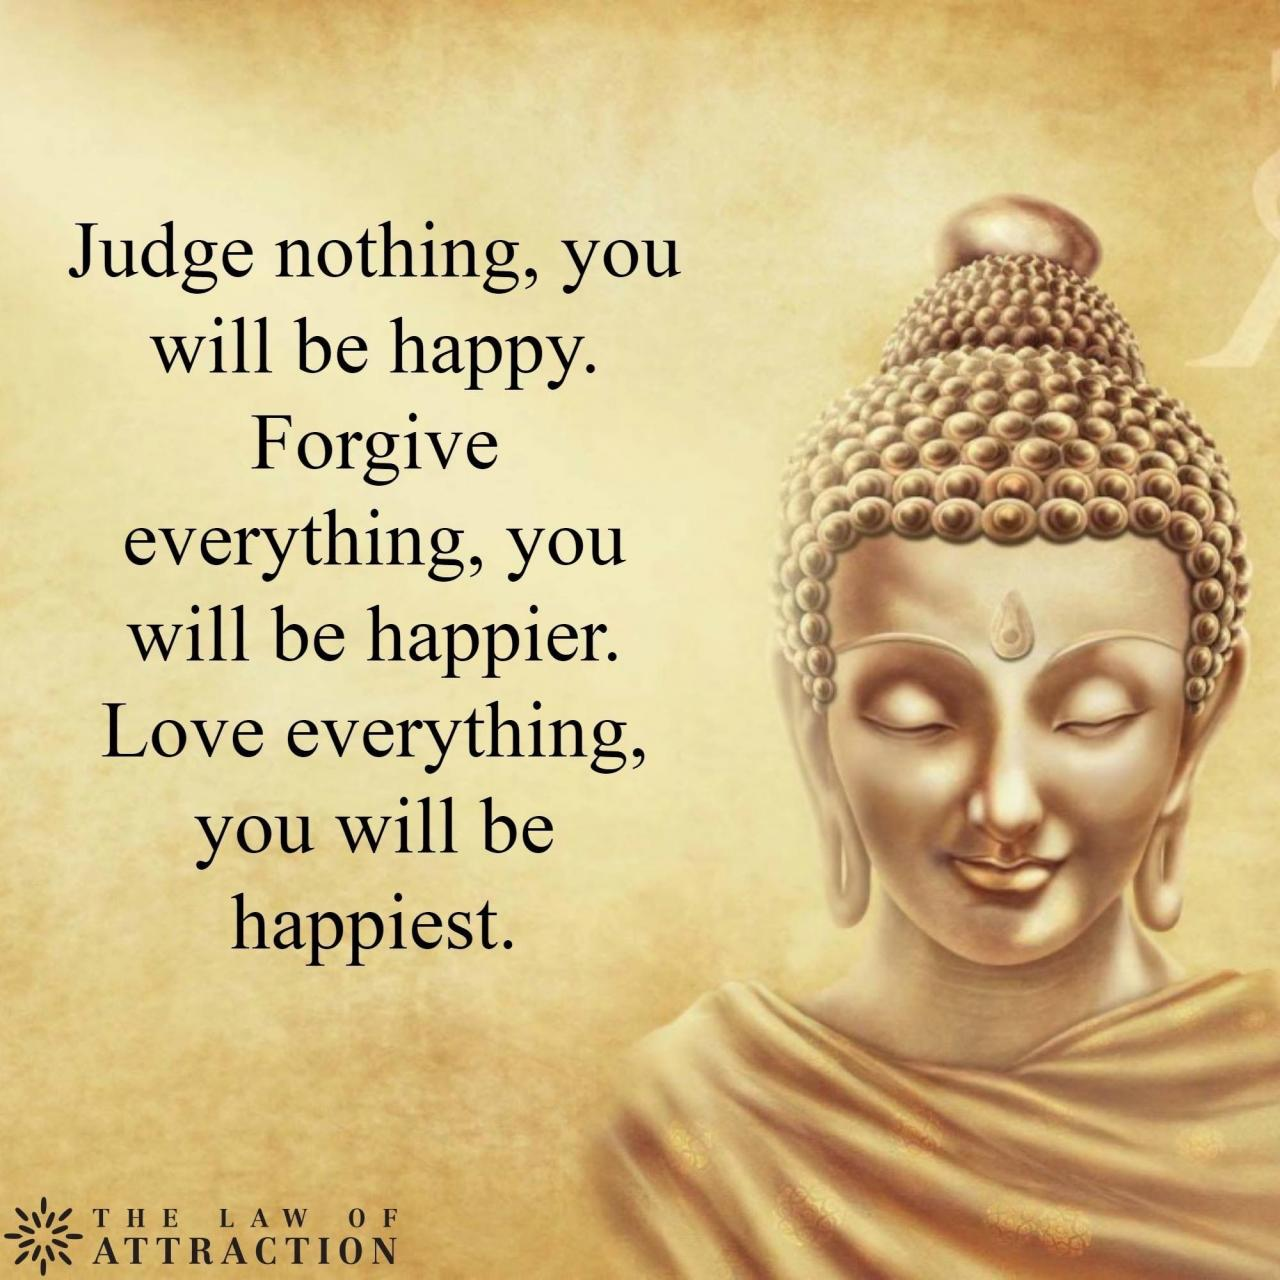 Let Everything Go Dont Judge Forgive And Love You Will Be Happy And Free Of Thought When Youre Not Busy Judging Others Forgetting What Someone Else